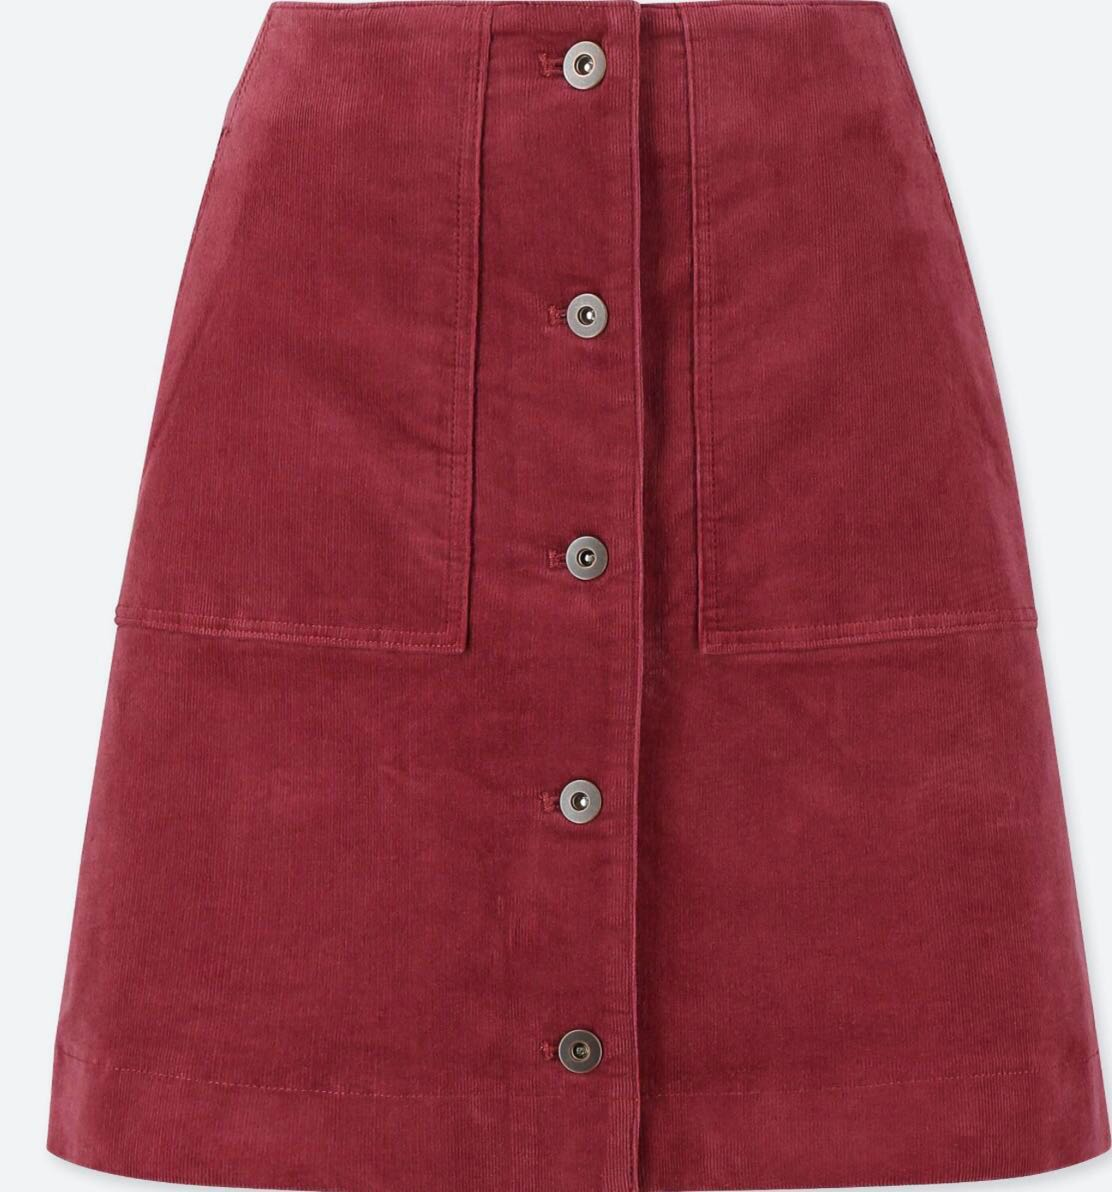 3aff59f9c67 UNIQLO CORDUROY FRONT BUTTON HIGH-WAIST MINI SKIRT (WINE